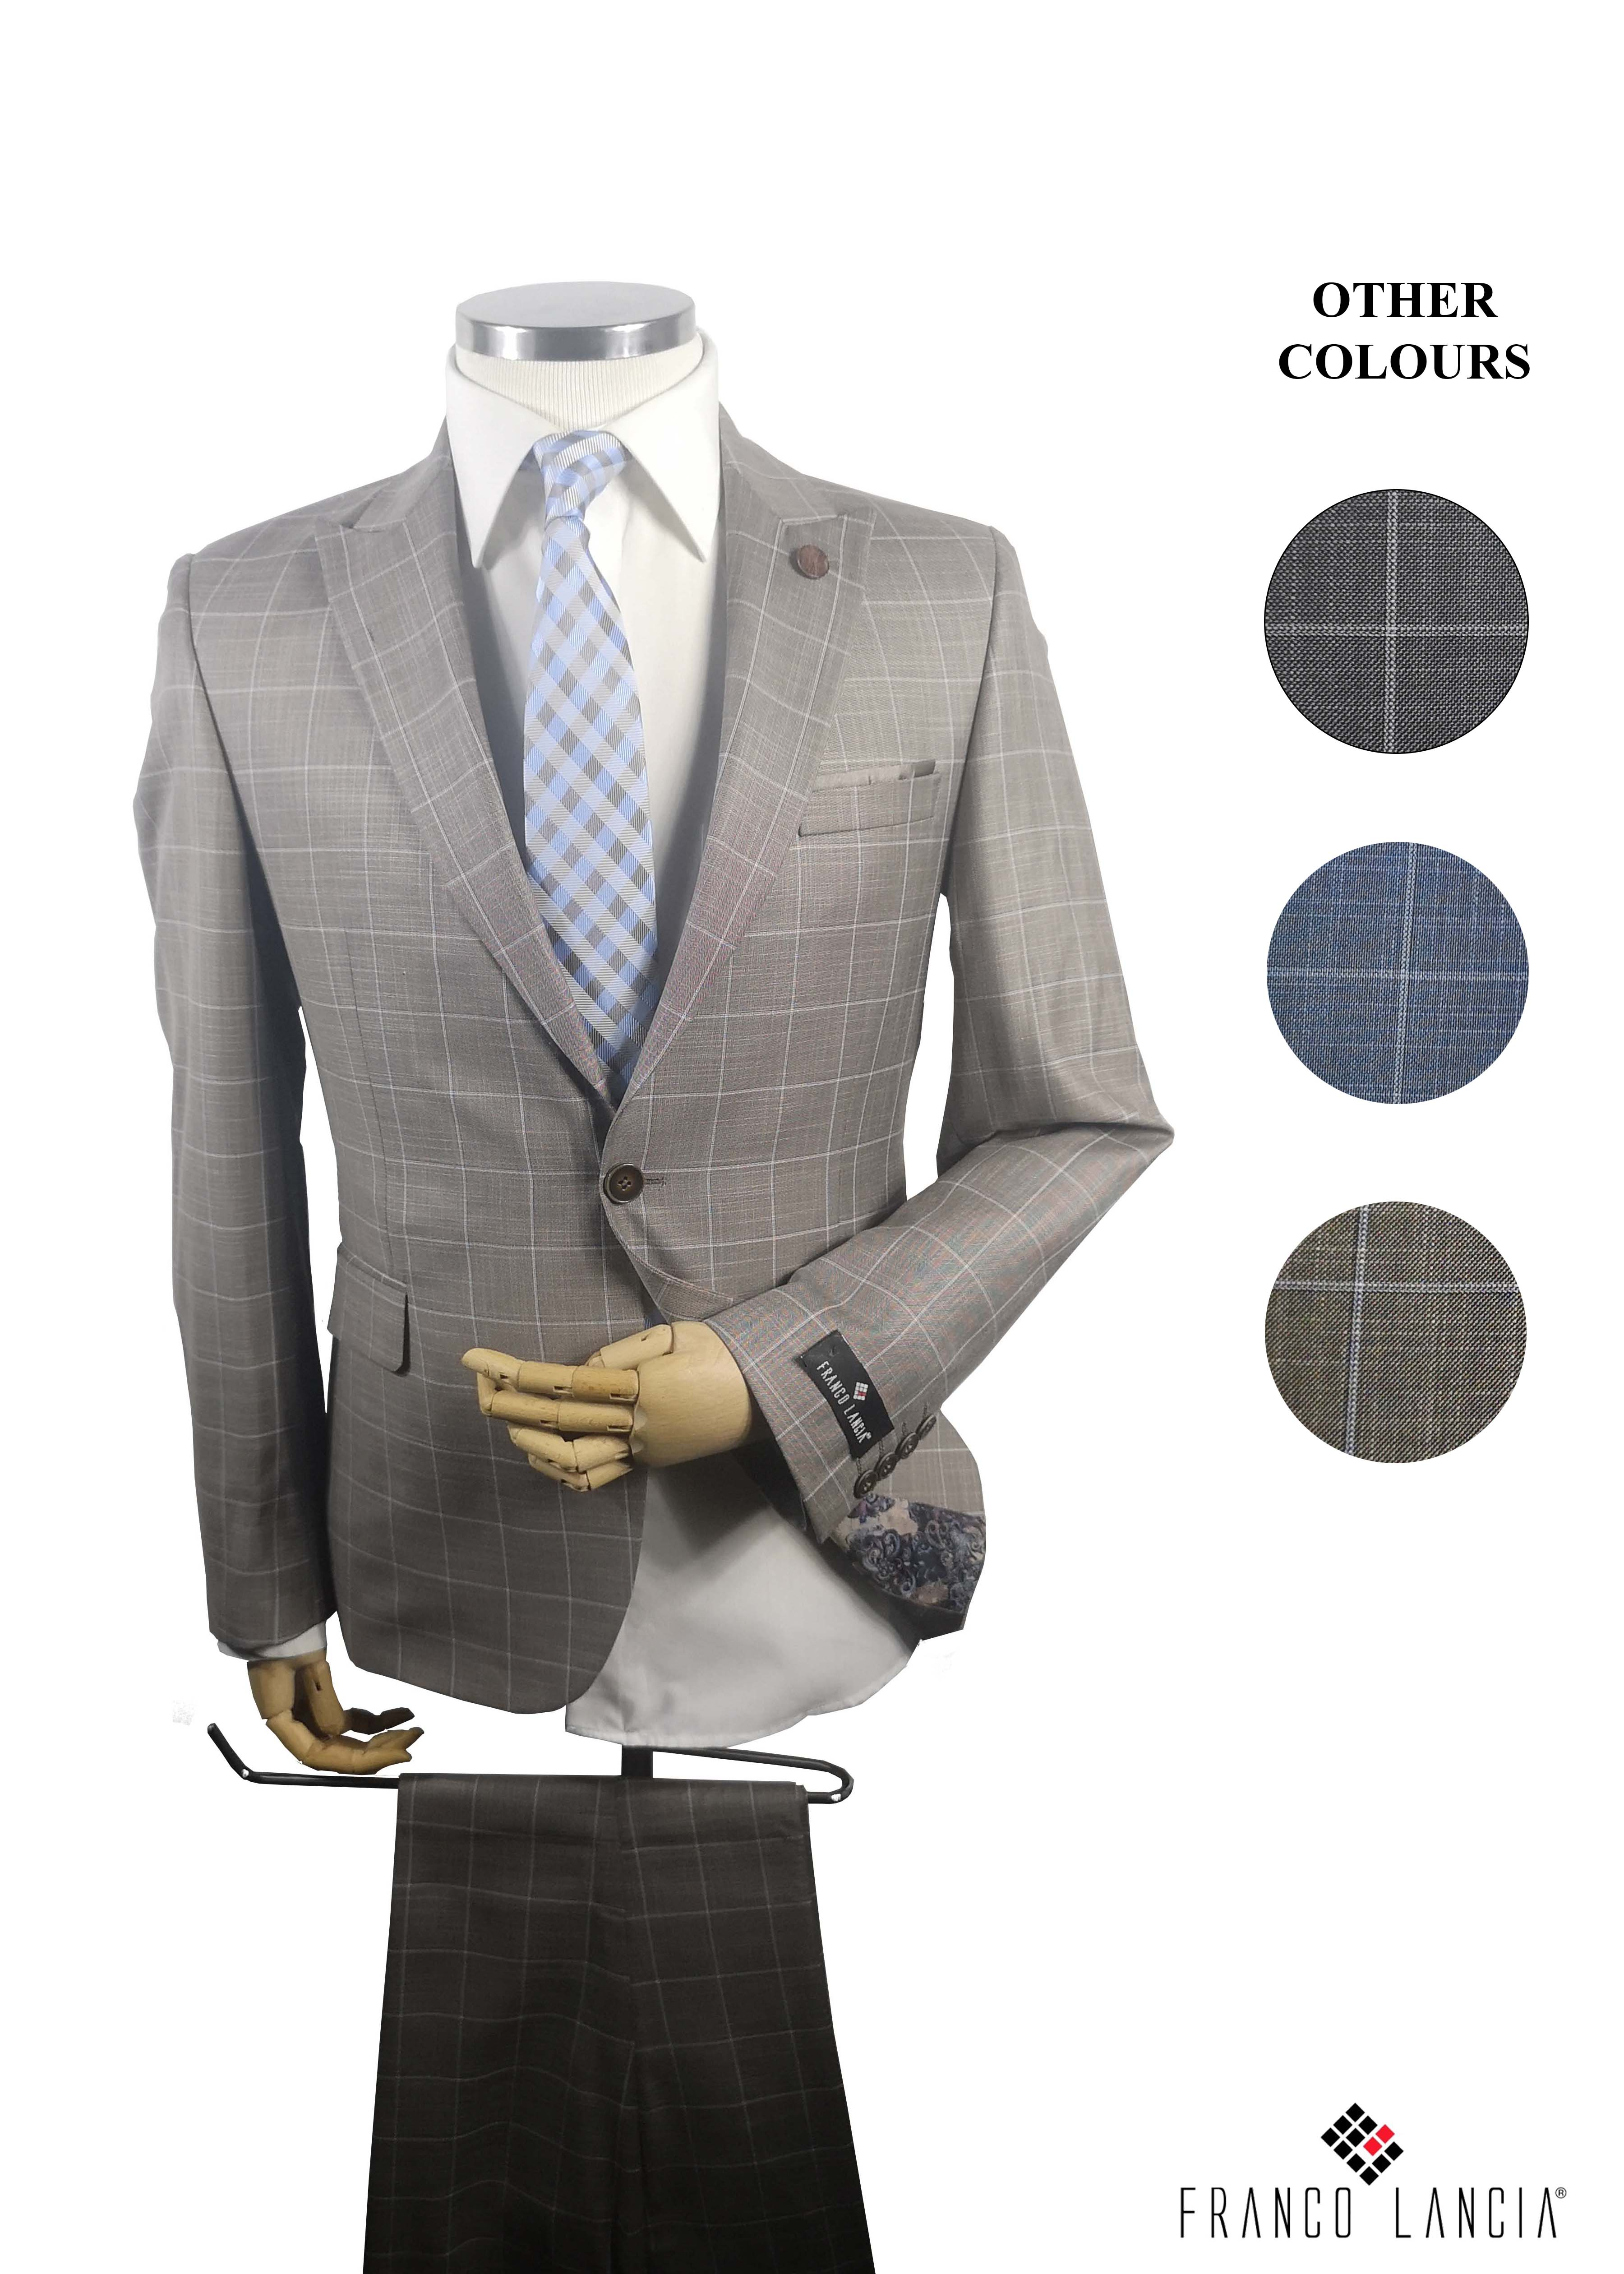 2 Piece Striped Suit Model and Colors